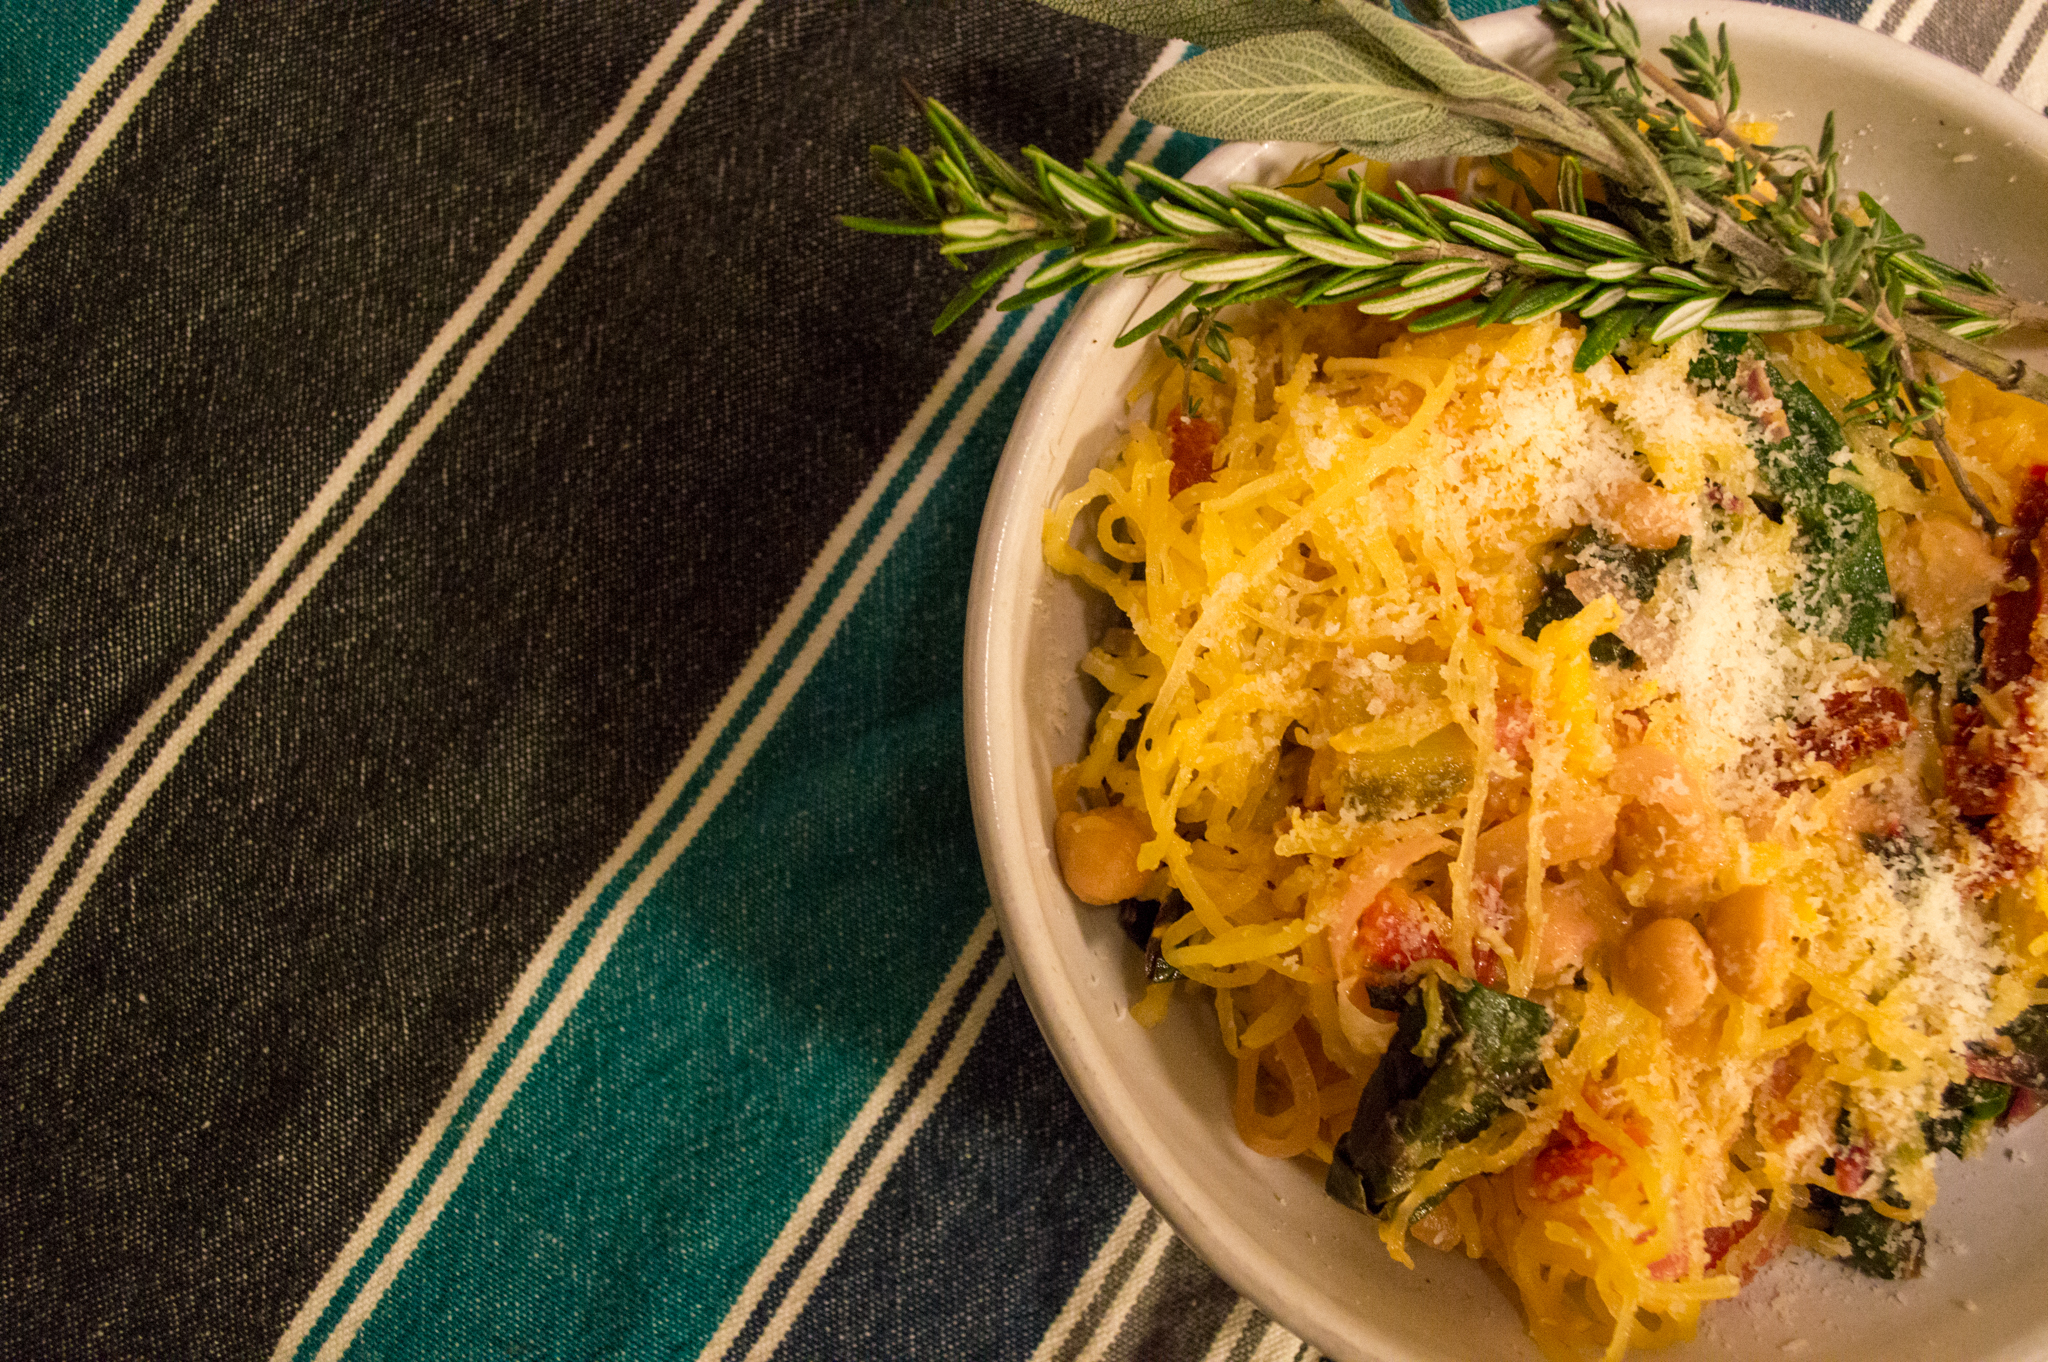 Spaghetti-Squash-with-Chickpeas-and-Chard-1.jpg